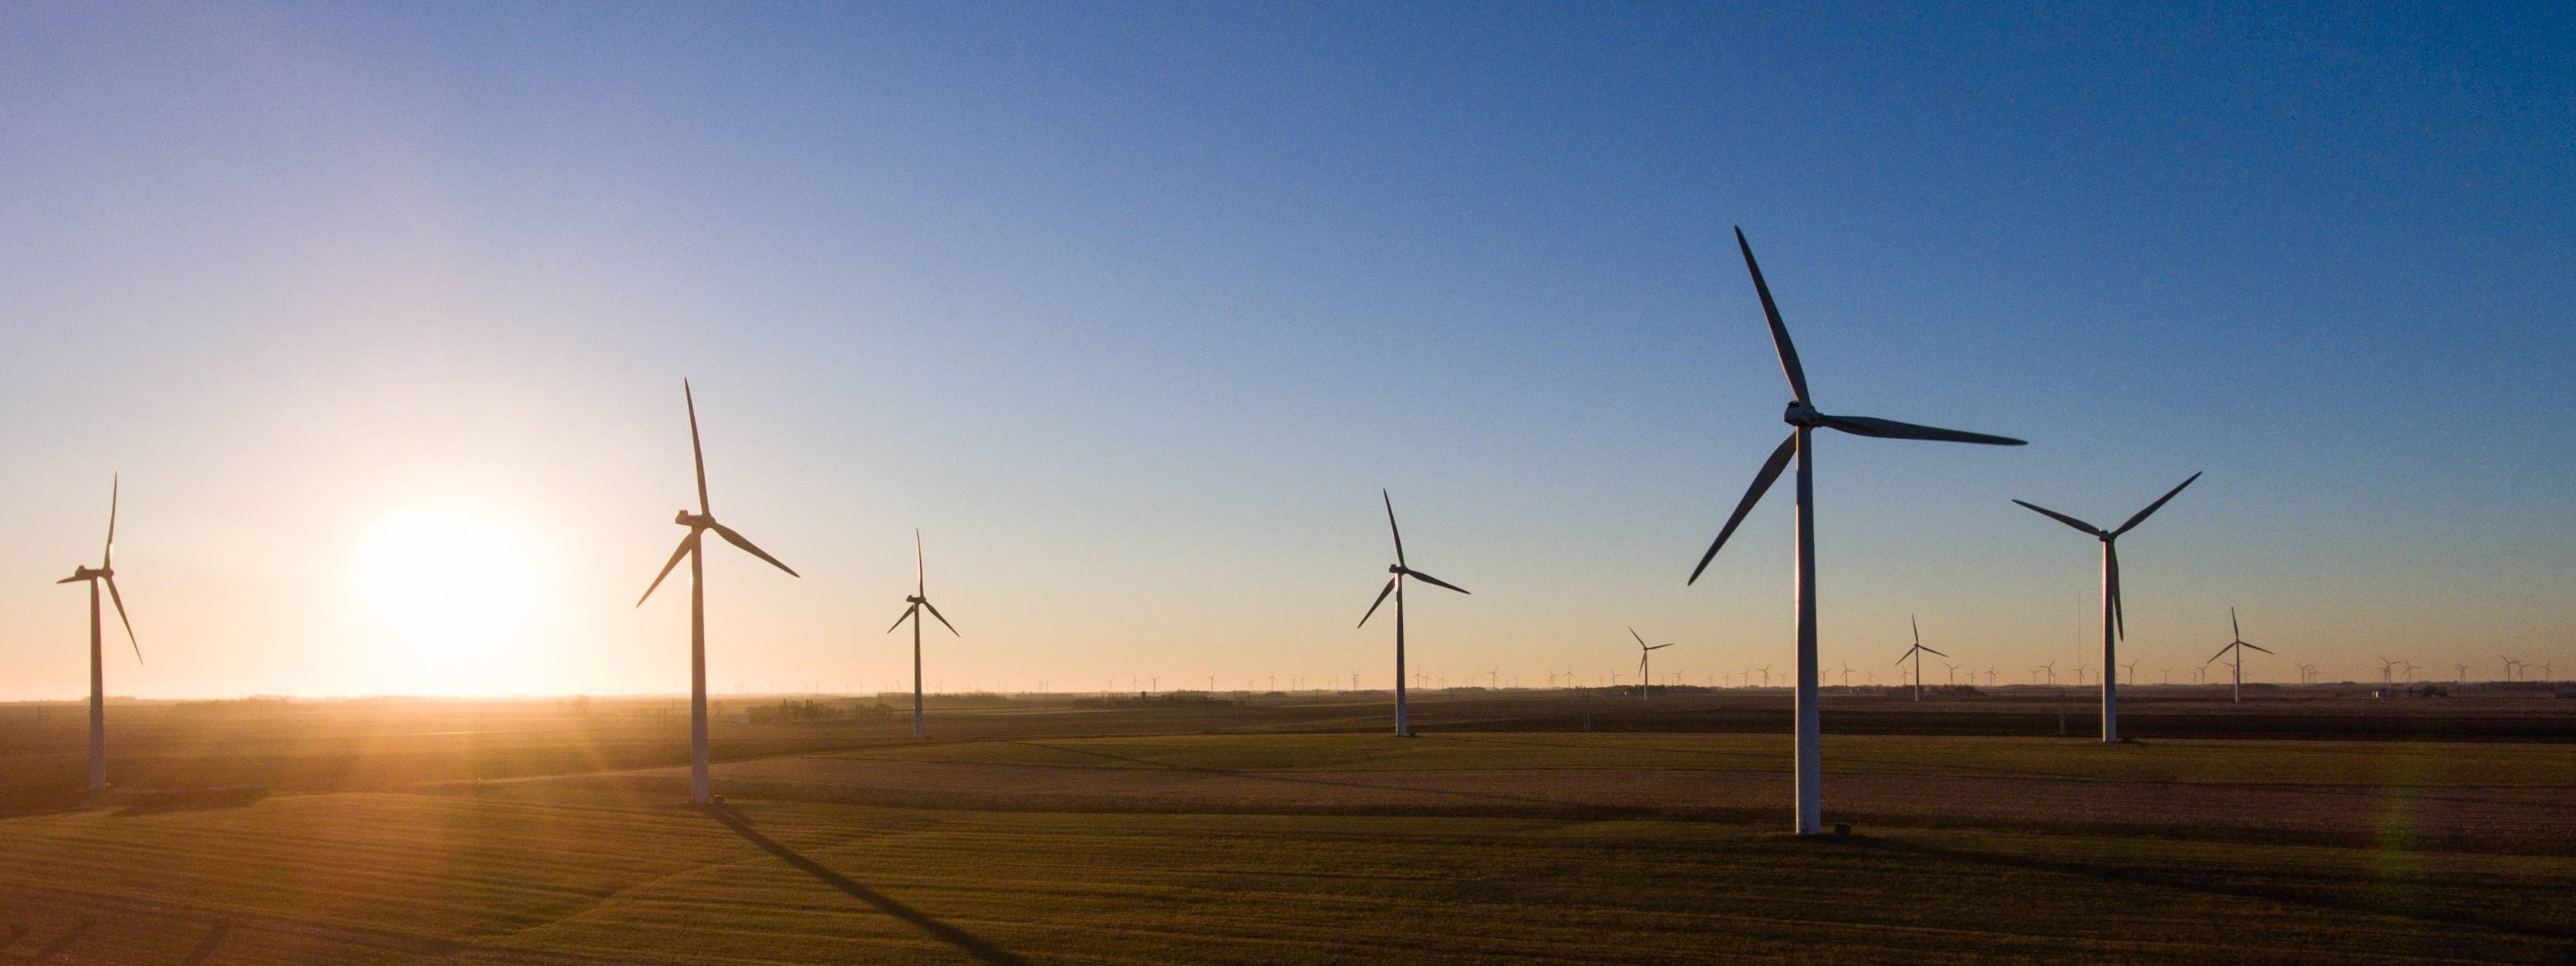 Report: Wind power now cheapest option for new capacity